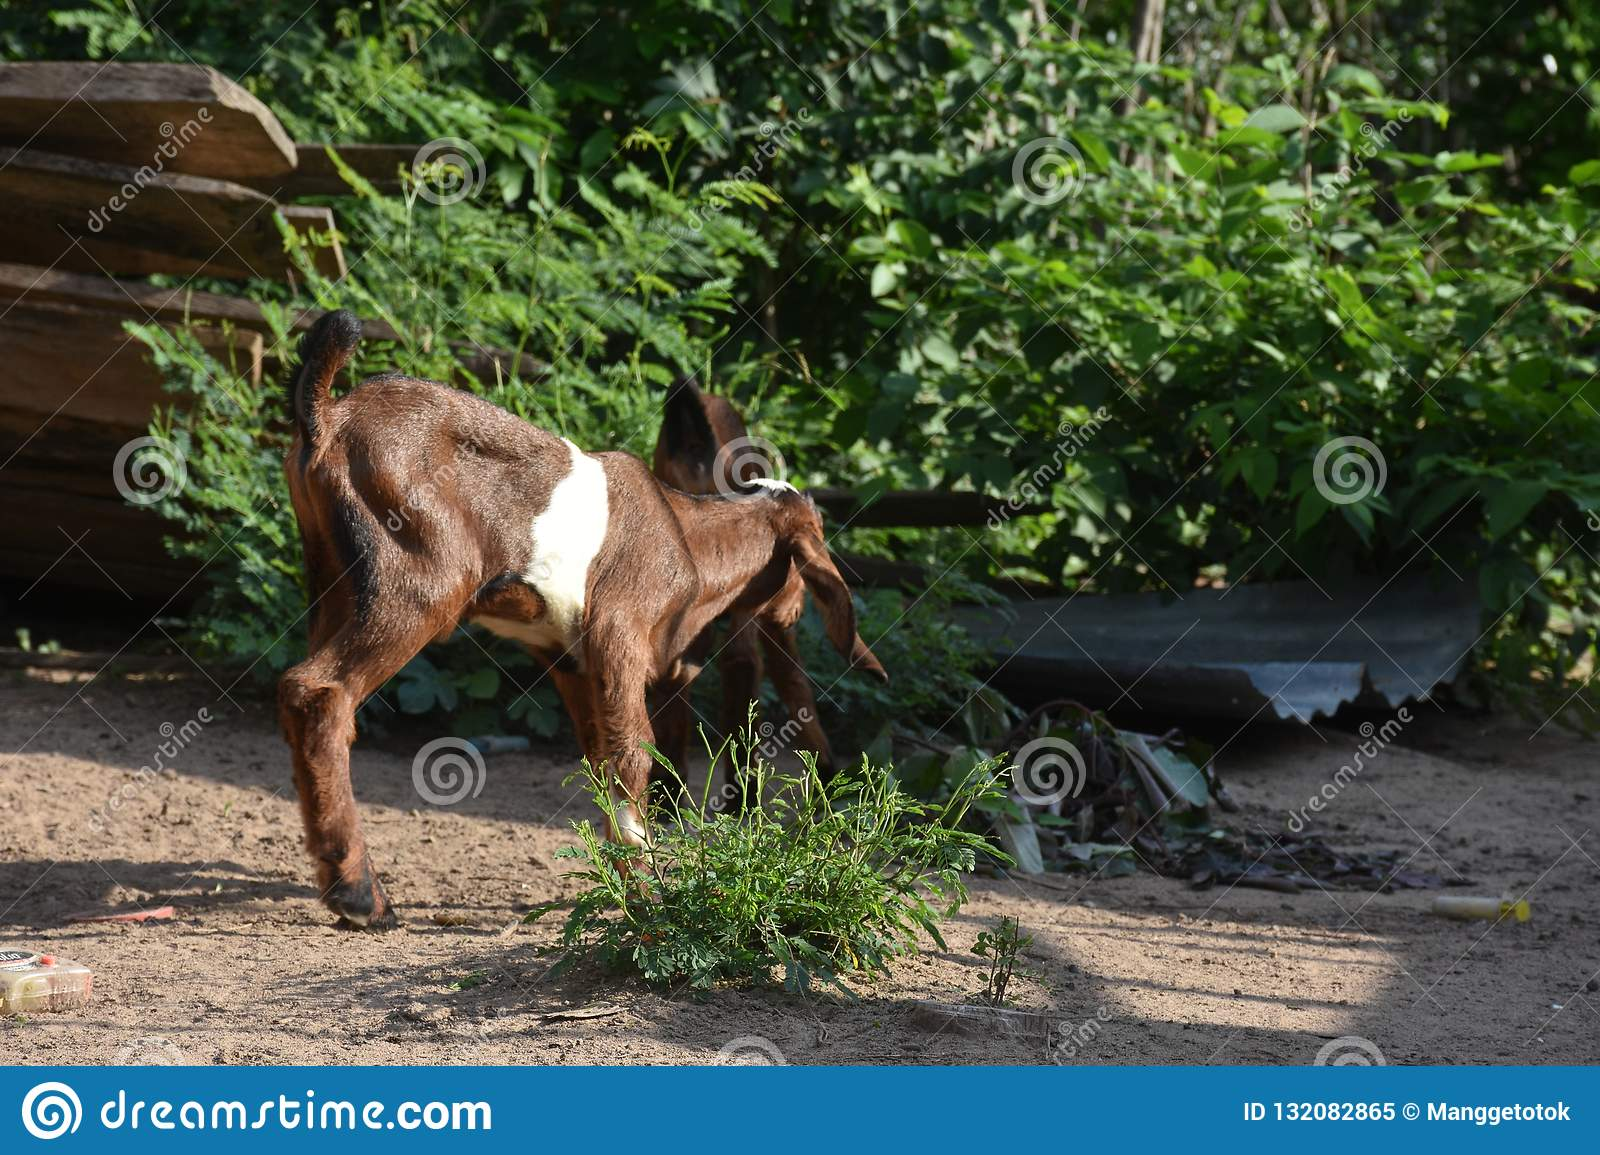 The funny behavior of a small goat